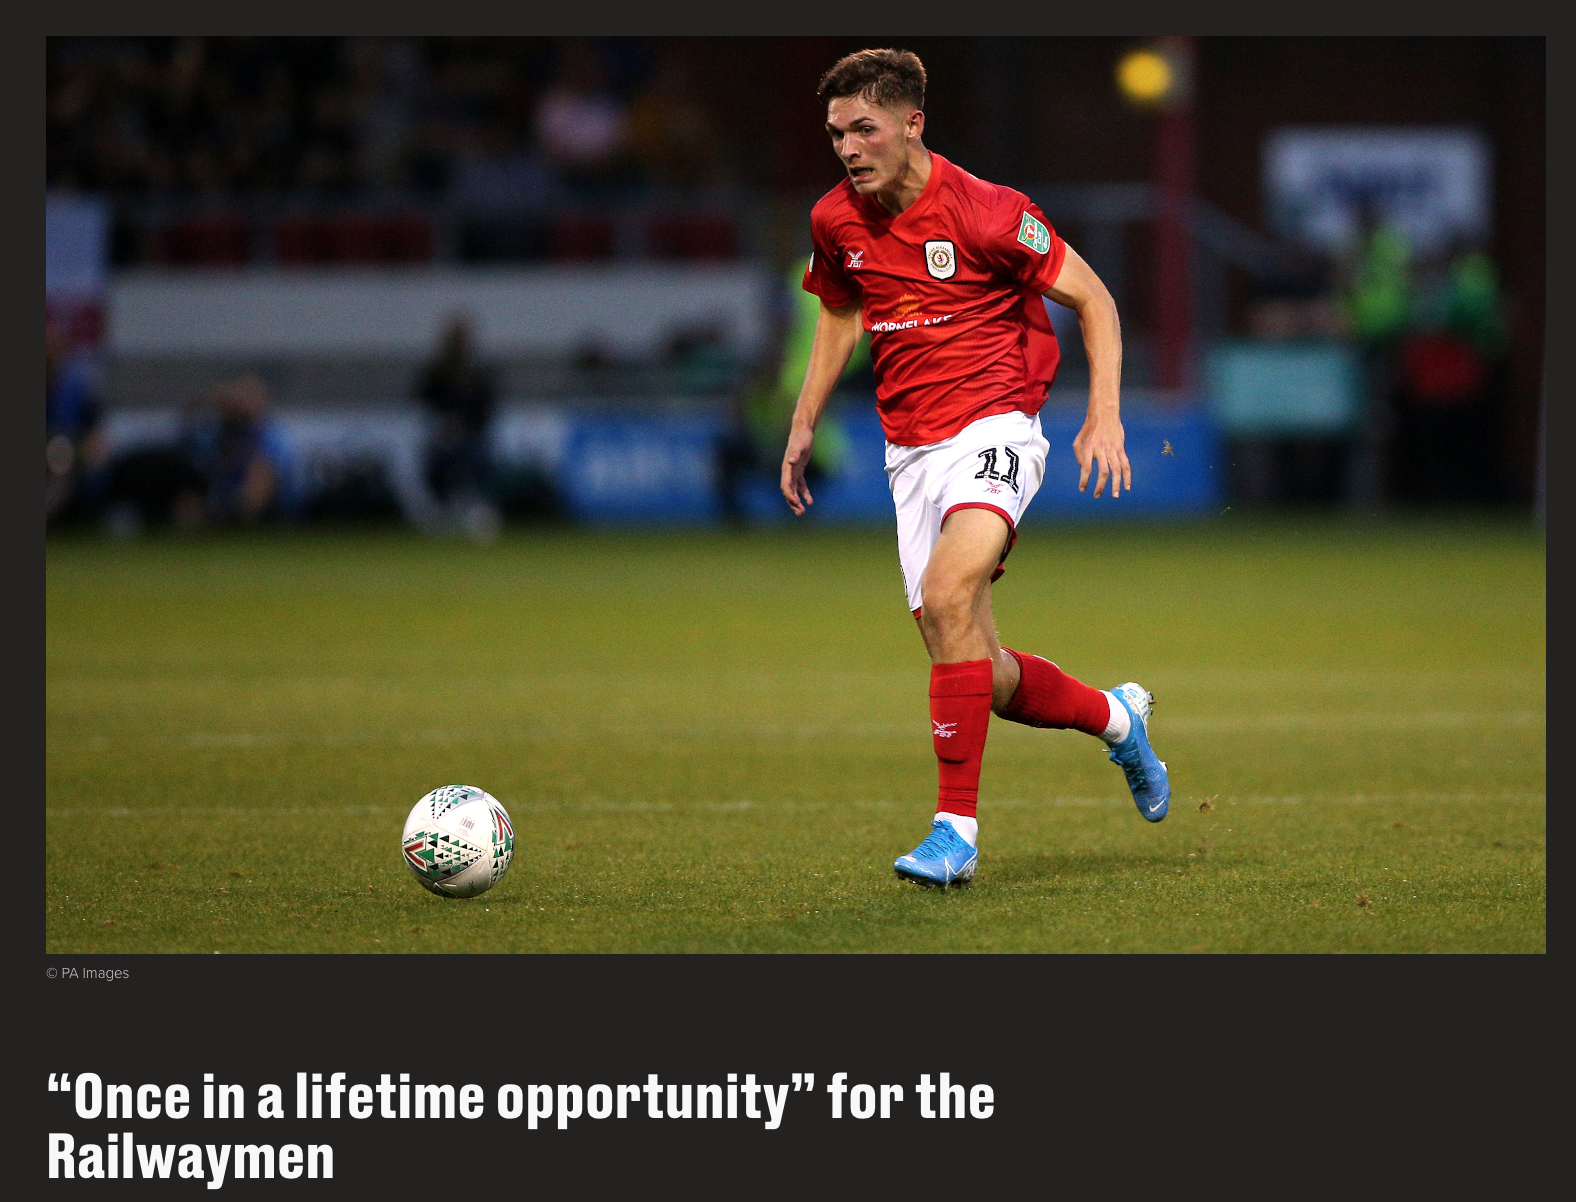 """Once in a lifetime opportunity"" for the Railwaymen"